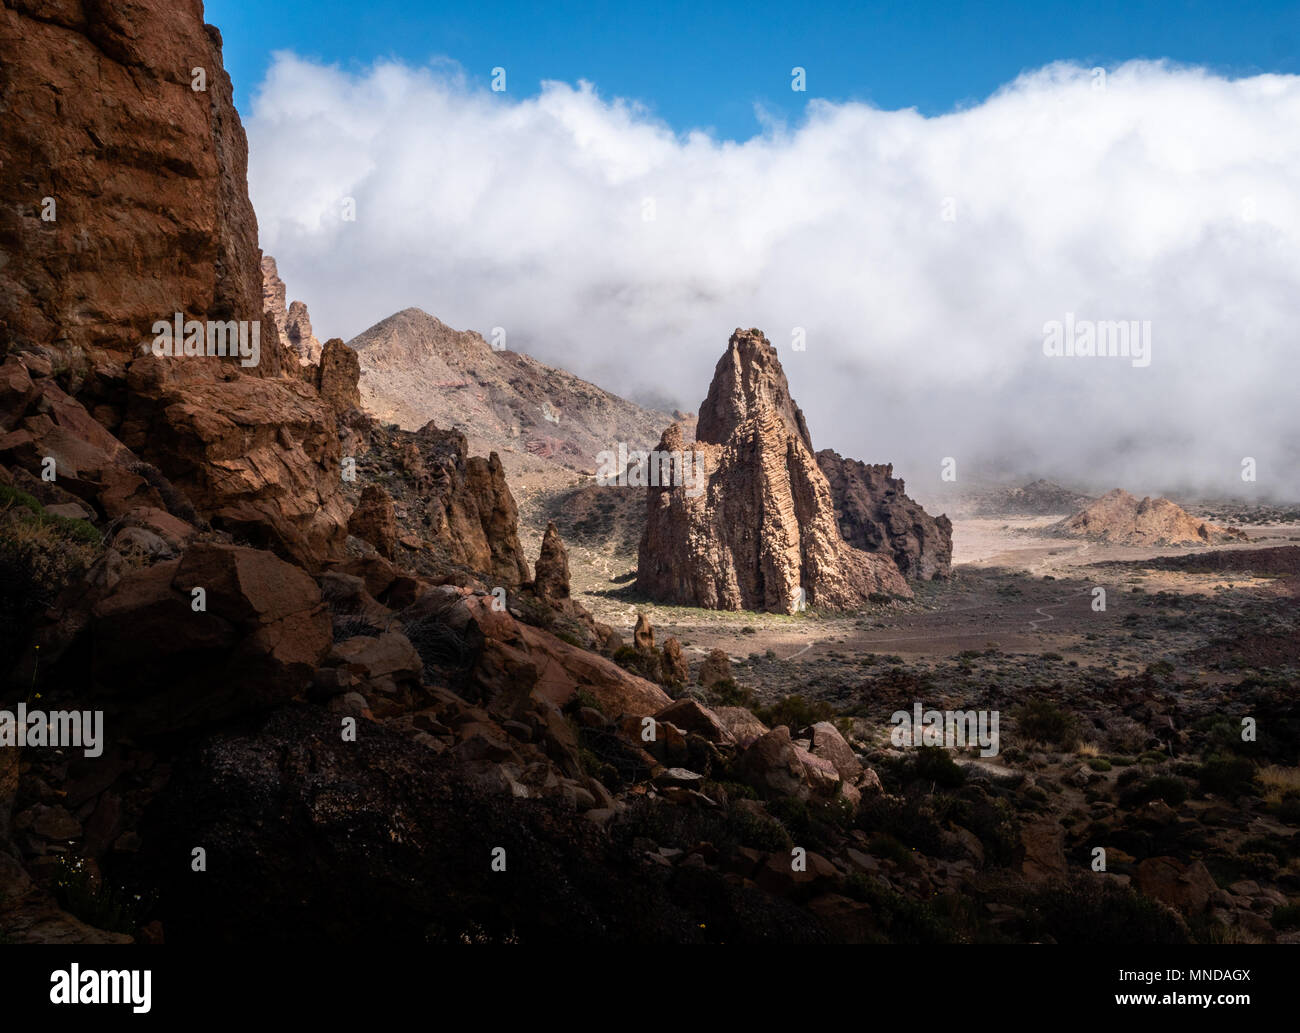 Striking rock formation The Cathedral which is an eroded volcanic plug at the Roques de Garcia in the caldera of Mount Teide Tenerife Canary Islands - Stock Image